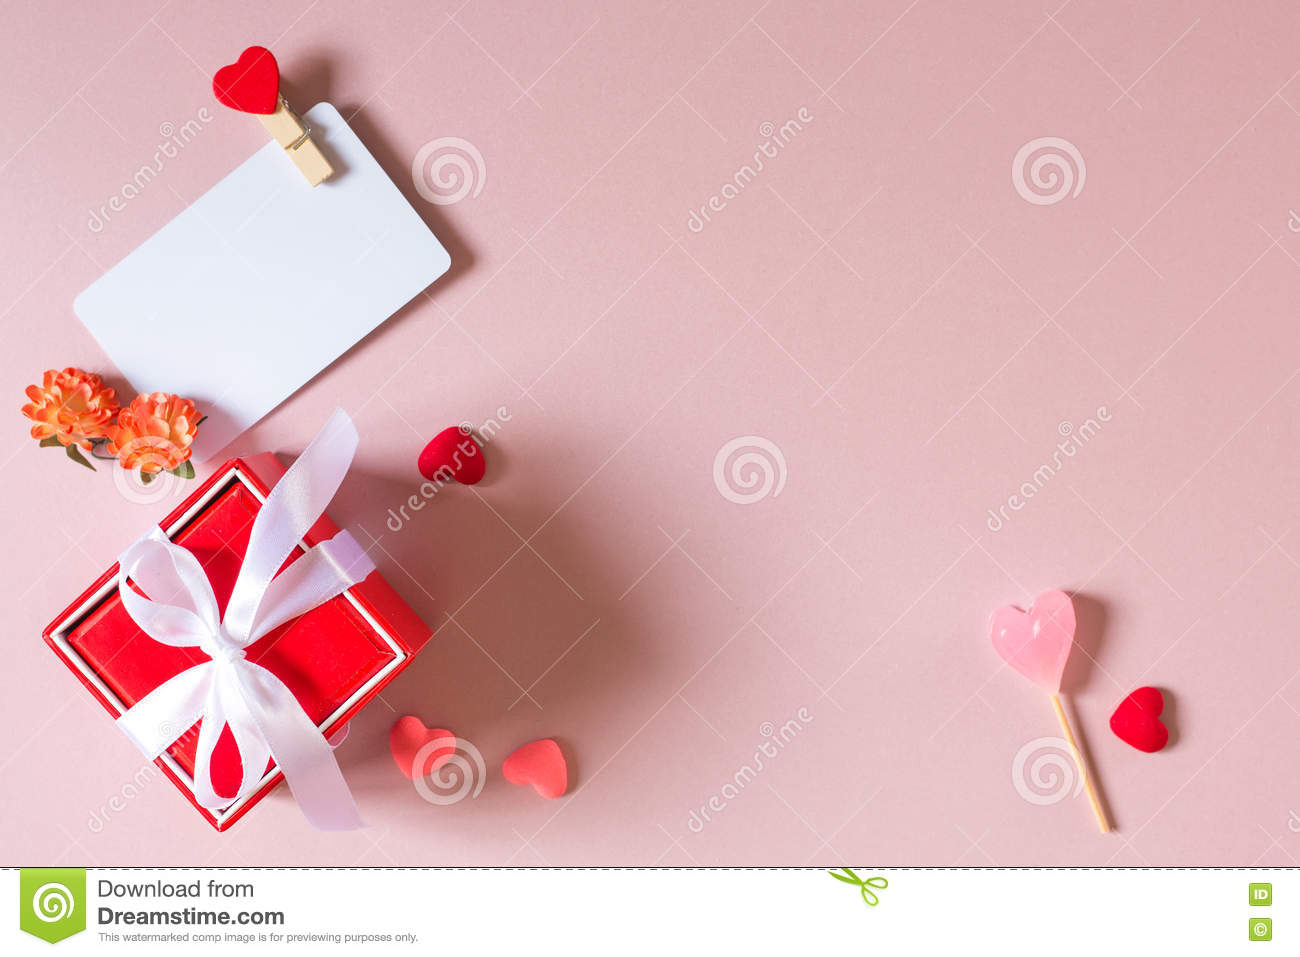 Red Gift Box With Bow Credit Visiting Card Template With Clamp